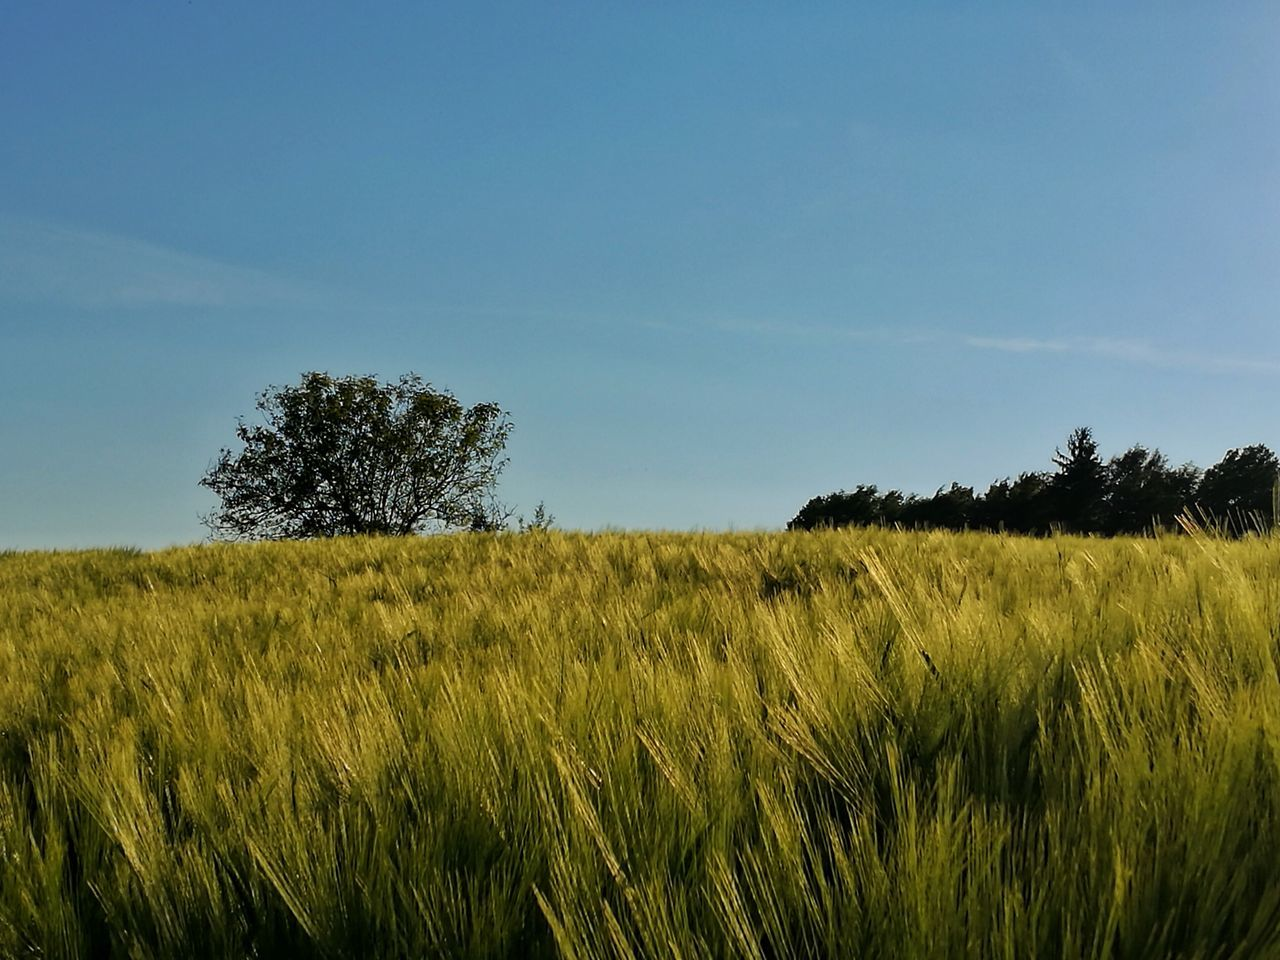 Field Agriculture Crop  Nature Rural Scene Tree Sky Outdoors Beauty In Nature Growth Landscape Grass Green Color Day Cloud - Sky No People Summer Cereal Plant Plant Scenics Wheat Field Beauty In Nature Tranquil Scene Landscape_photography EyeEm Best Shots